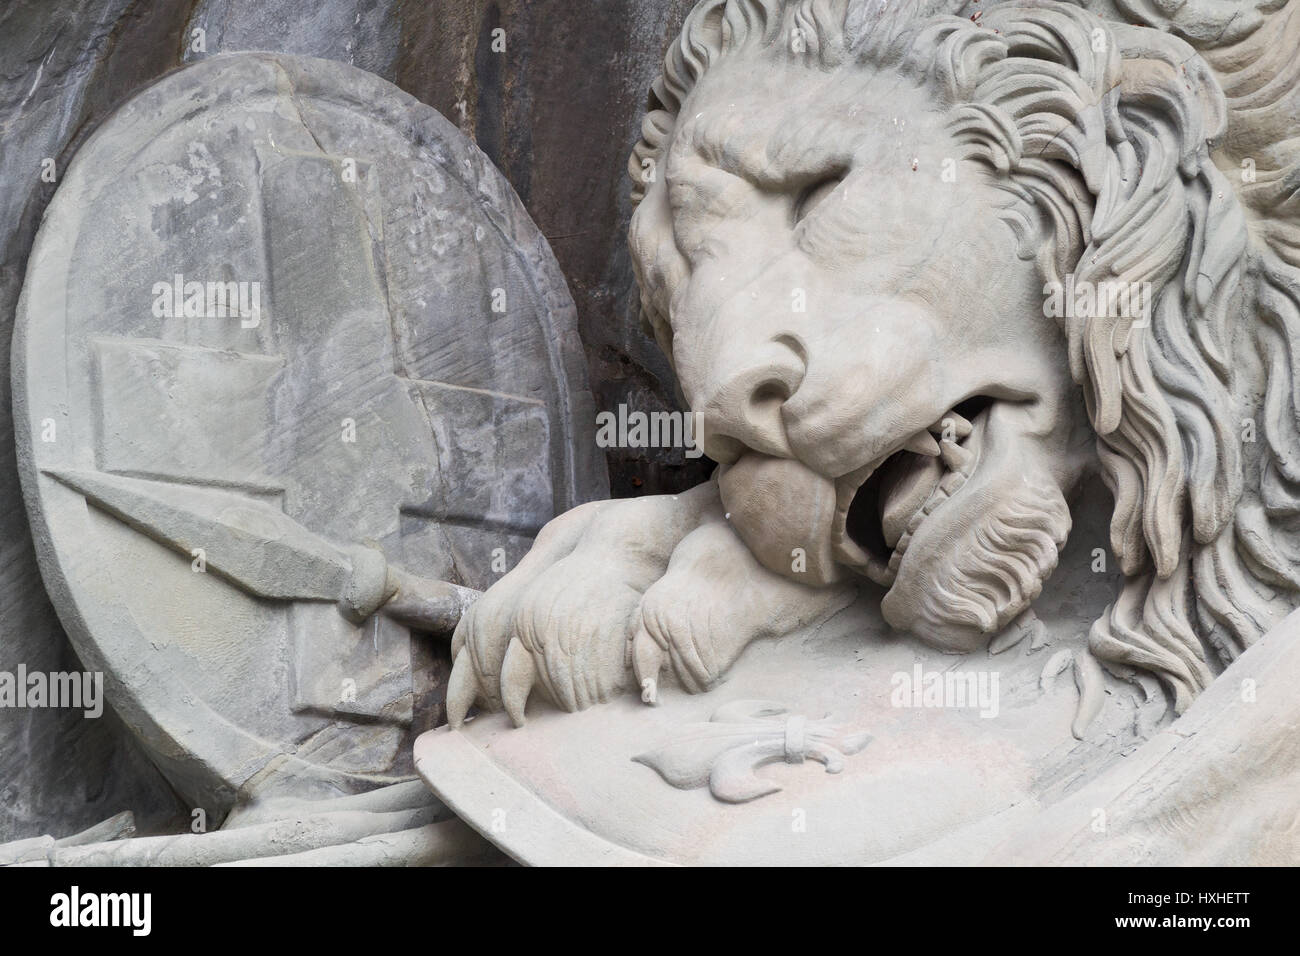 Löwendenkmal: 'the most mournful and moving piece of stone in the world' (Mark Twain) - close-up - Stock Image